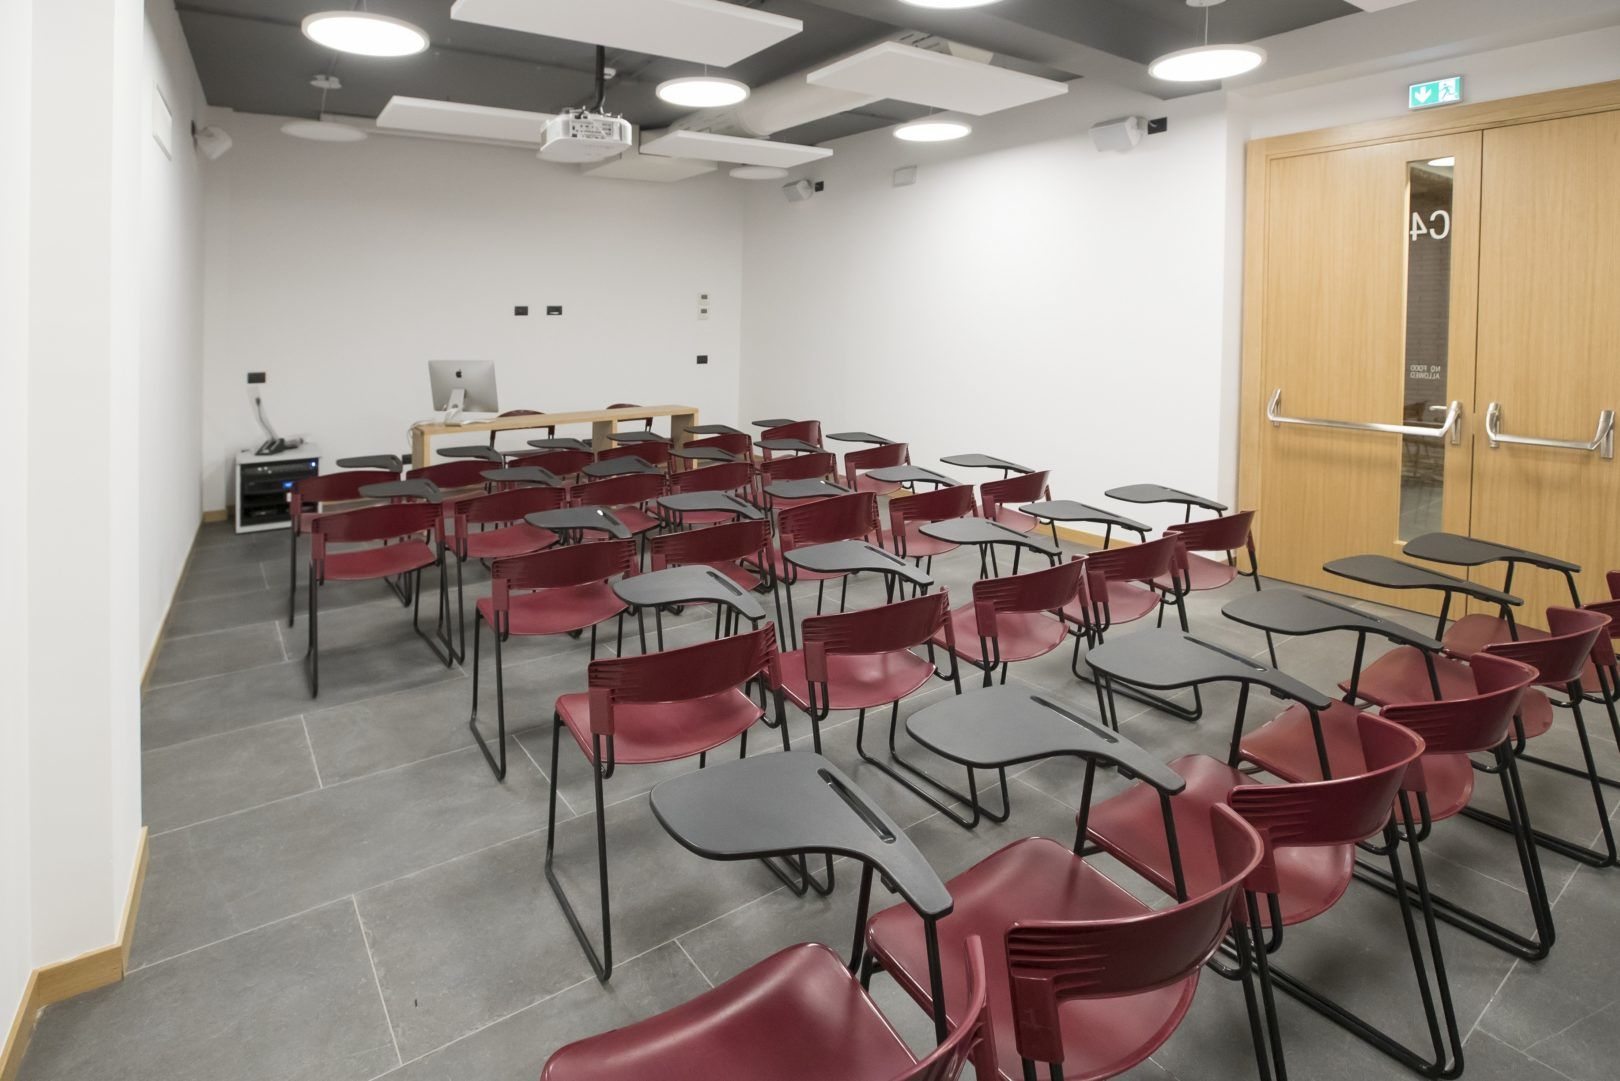 Classroom with rows of red chairs